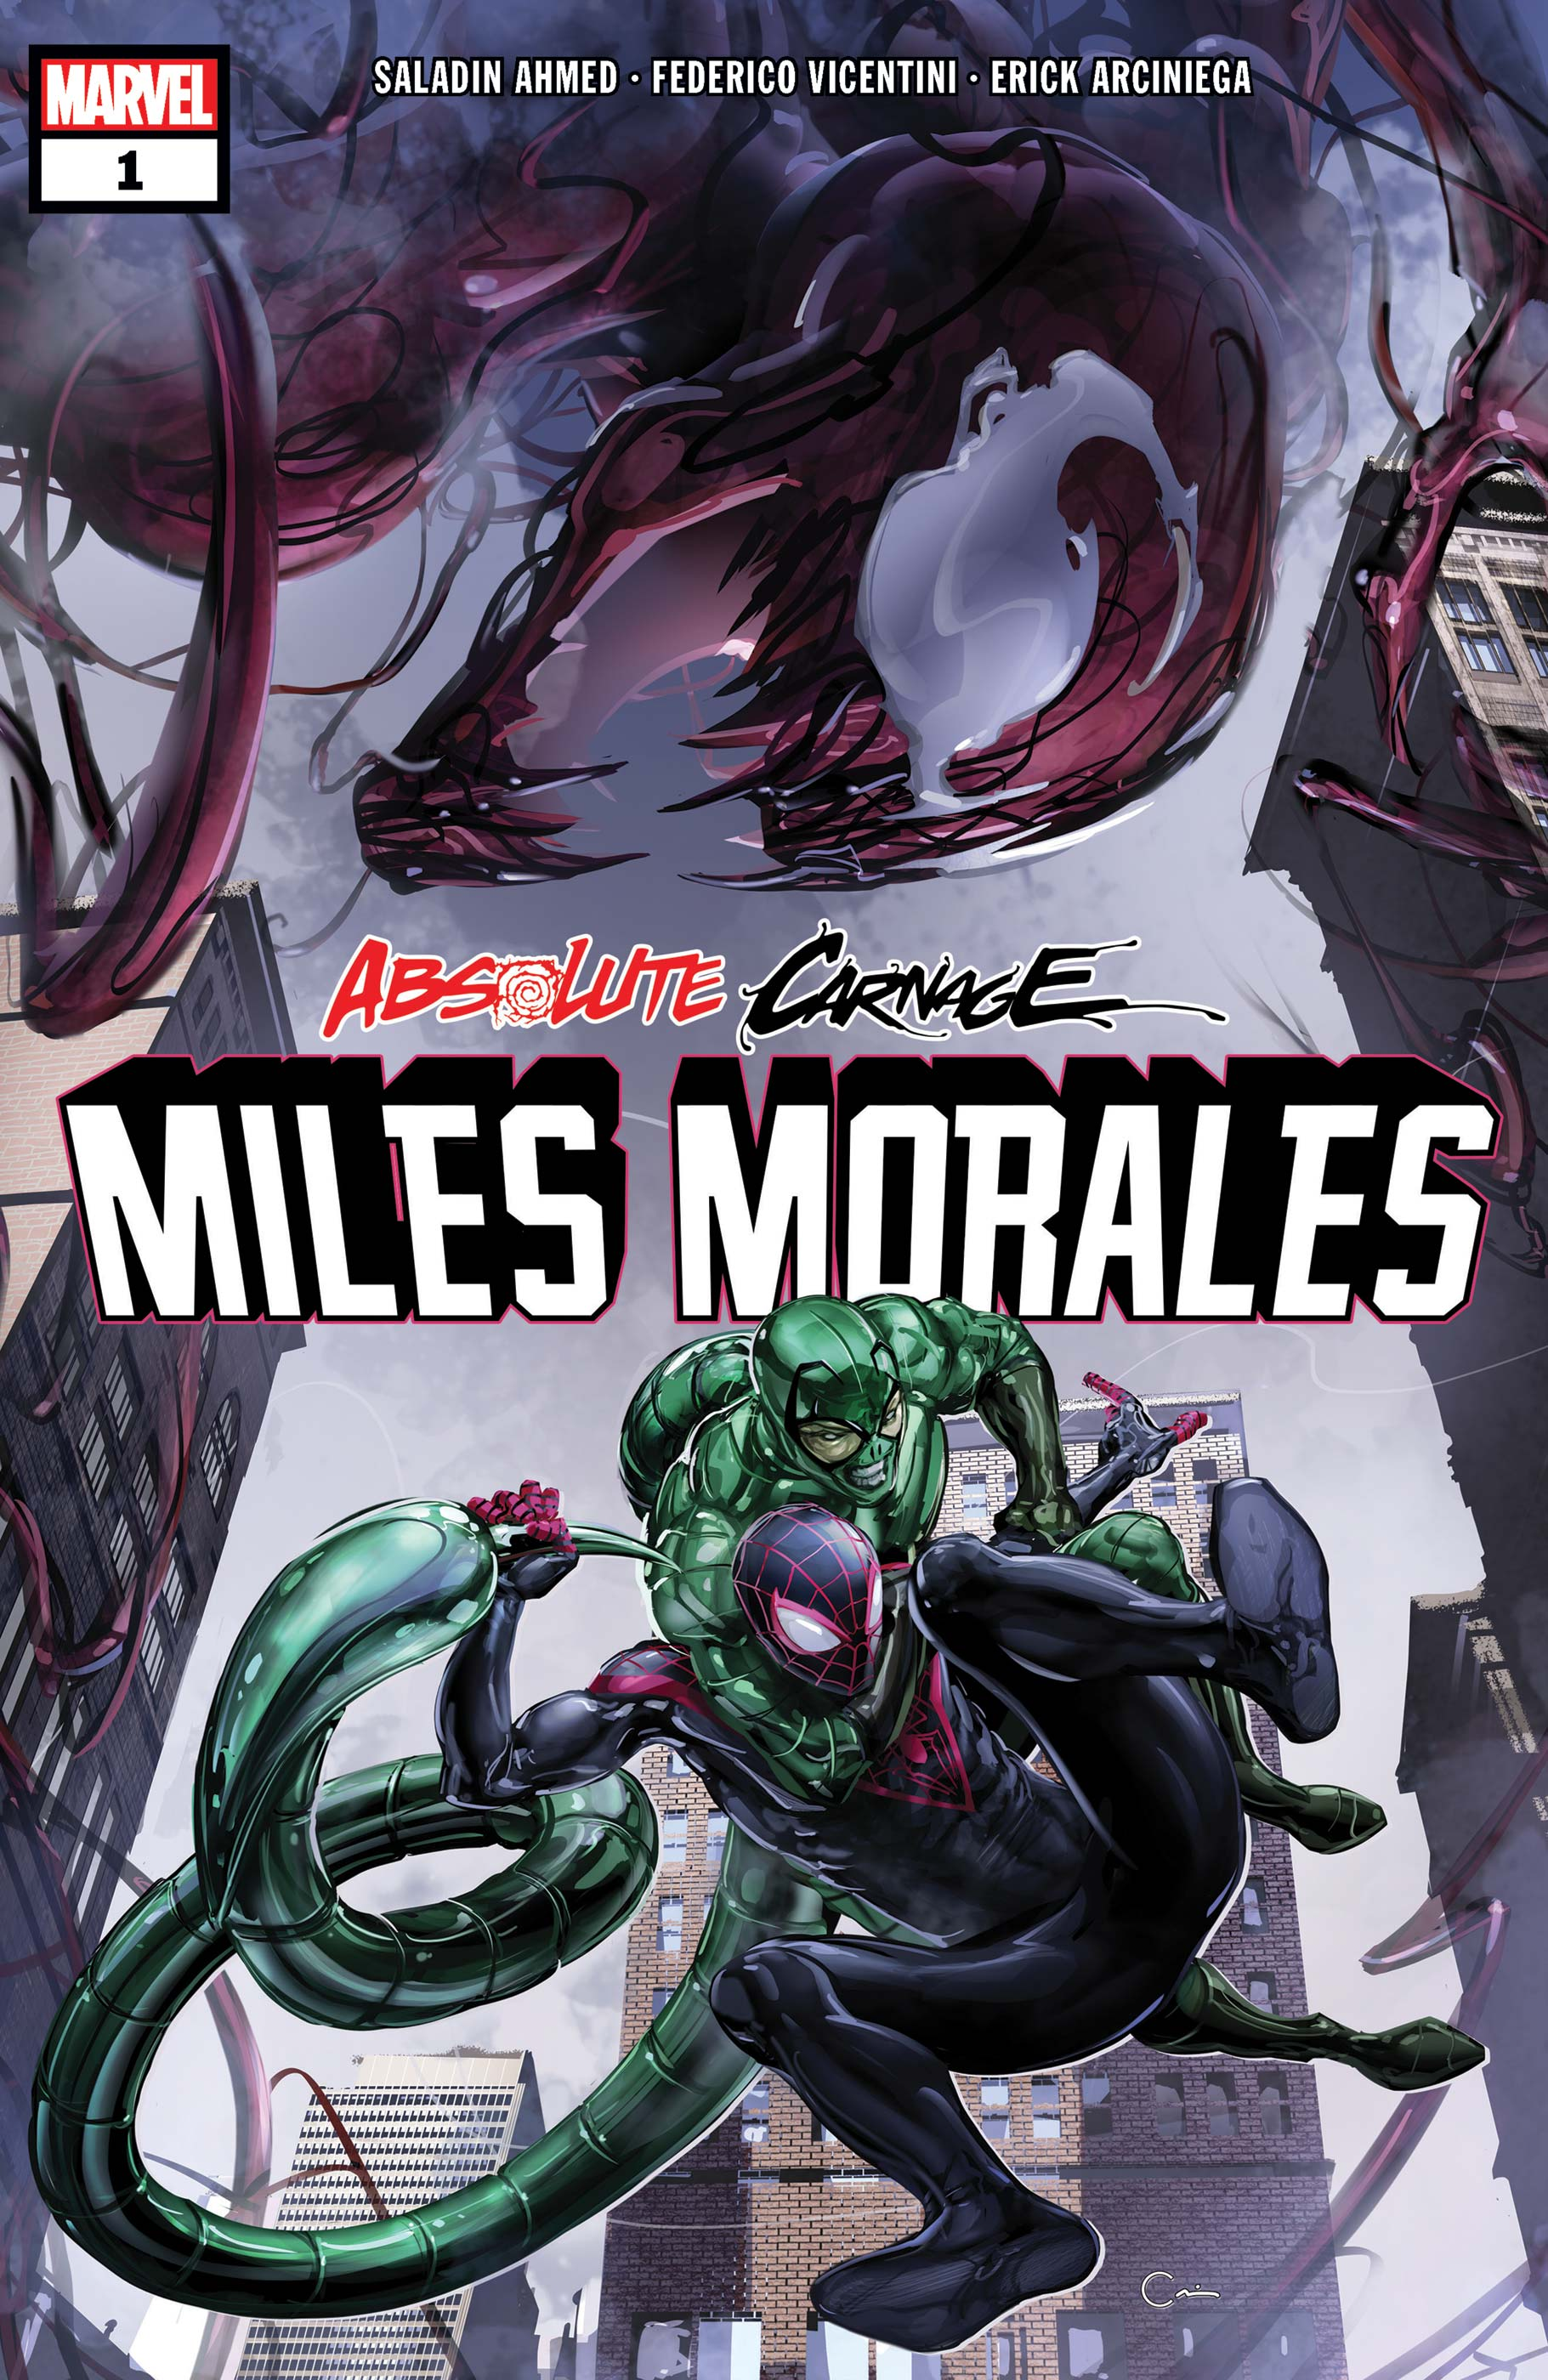 Absolute Carnage: Miles Morales (2019) #1